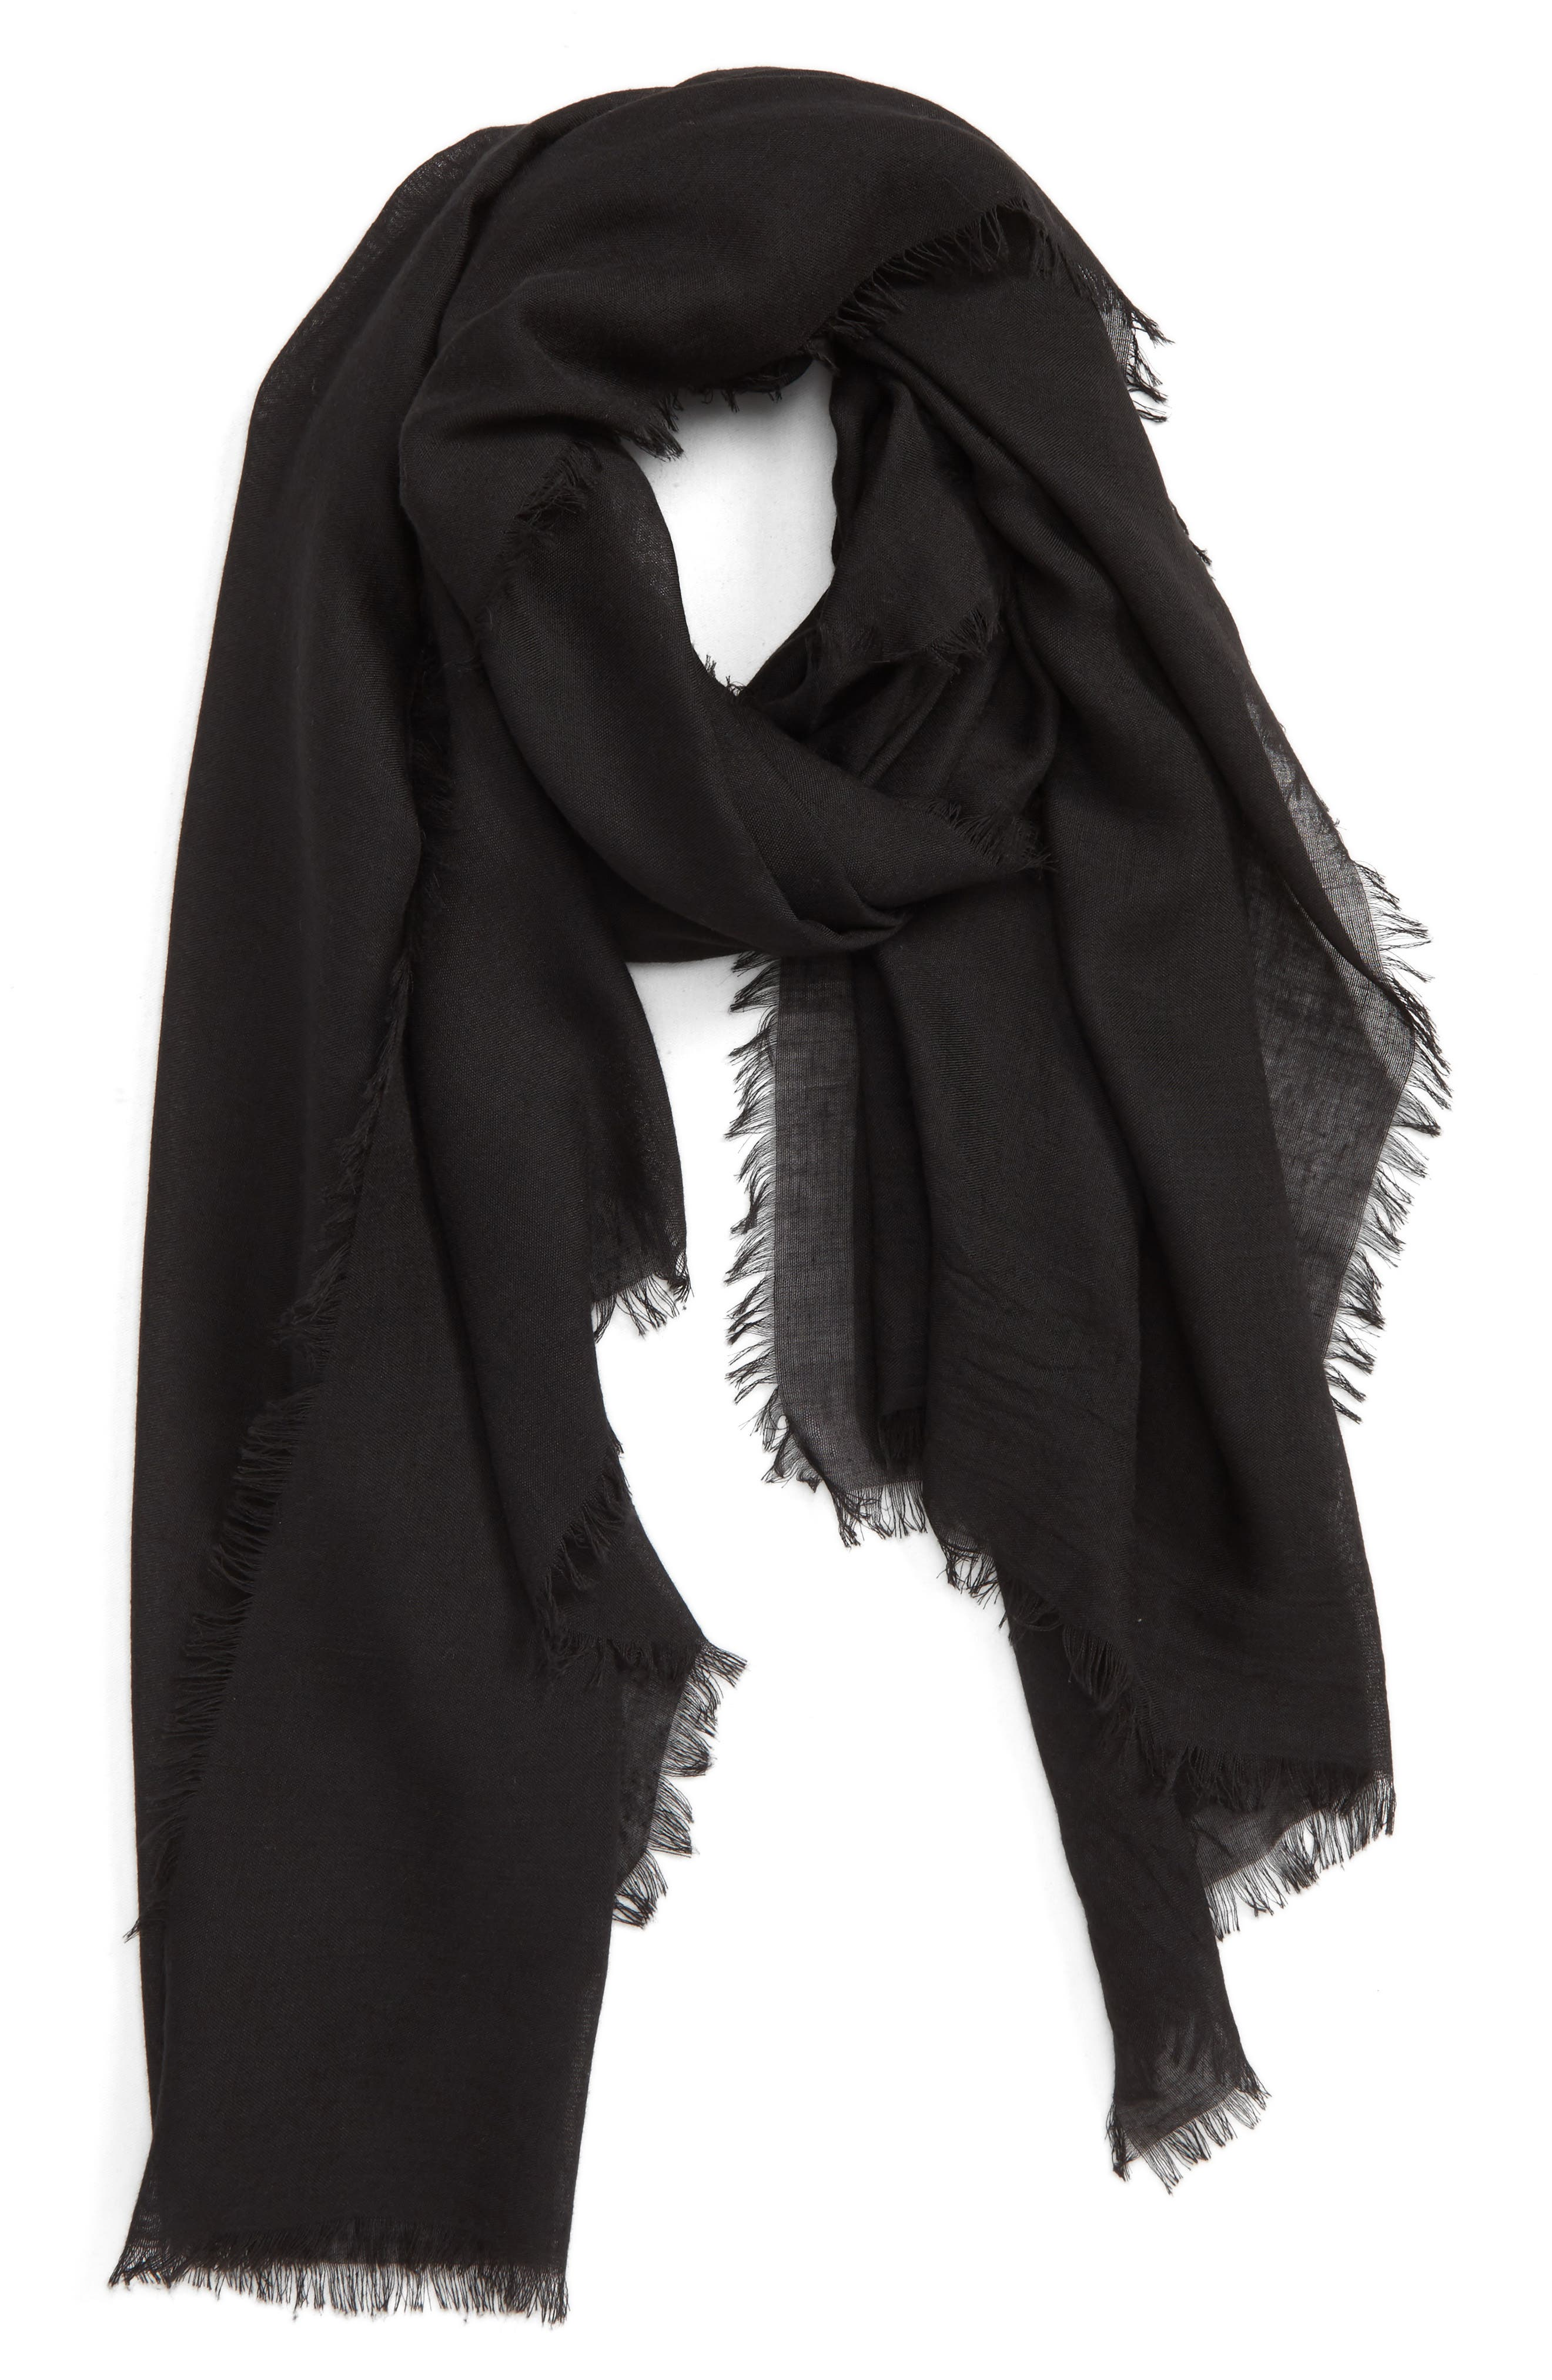 SOLE SOCIETY, Lightweight Cotton Scarf, Main thumbnail 1, color, BLACK